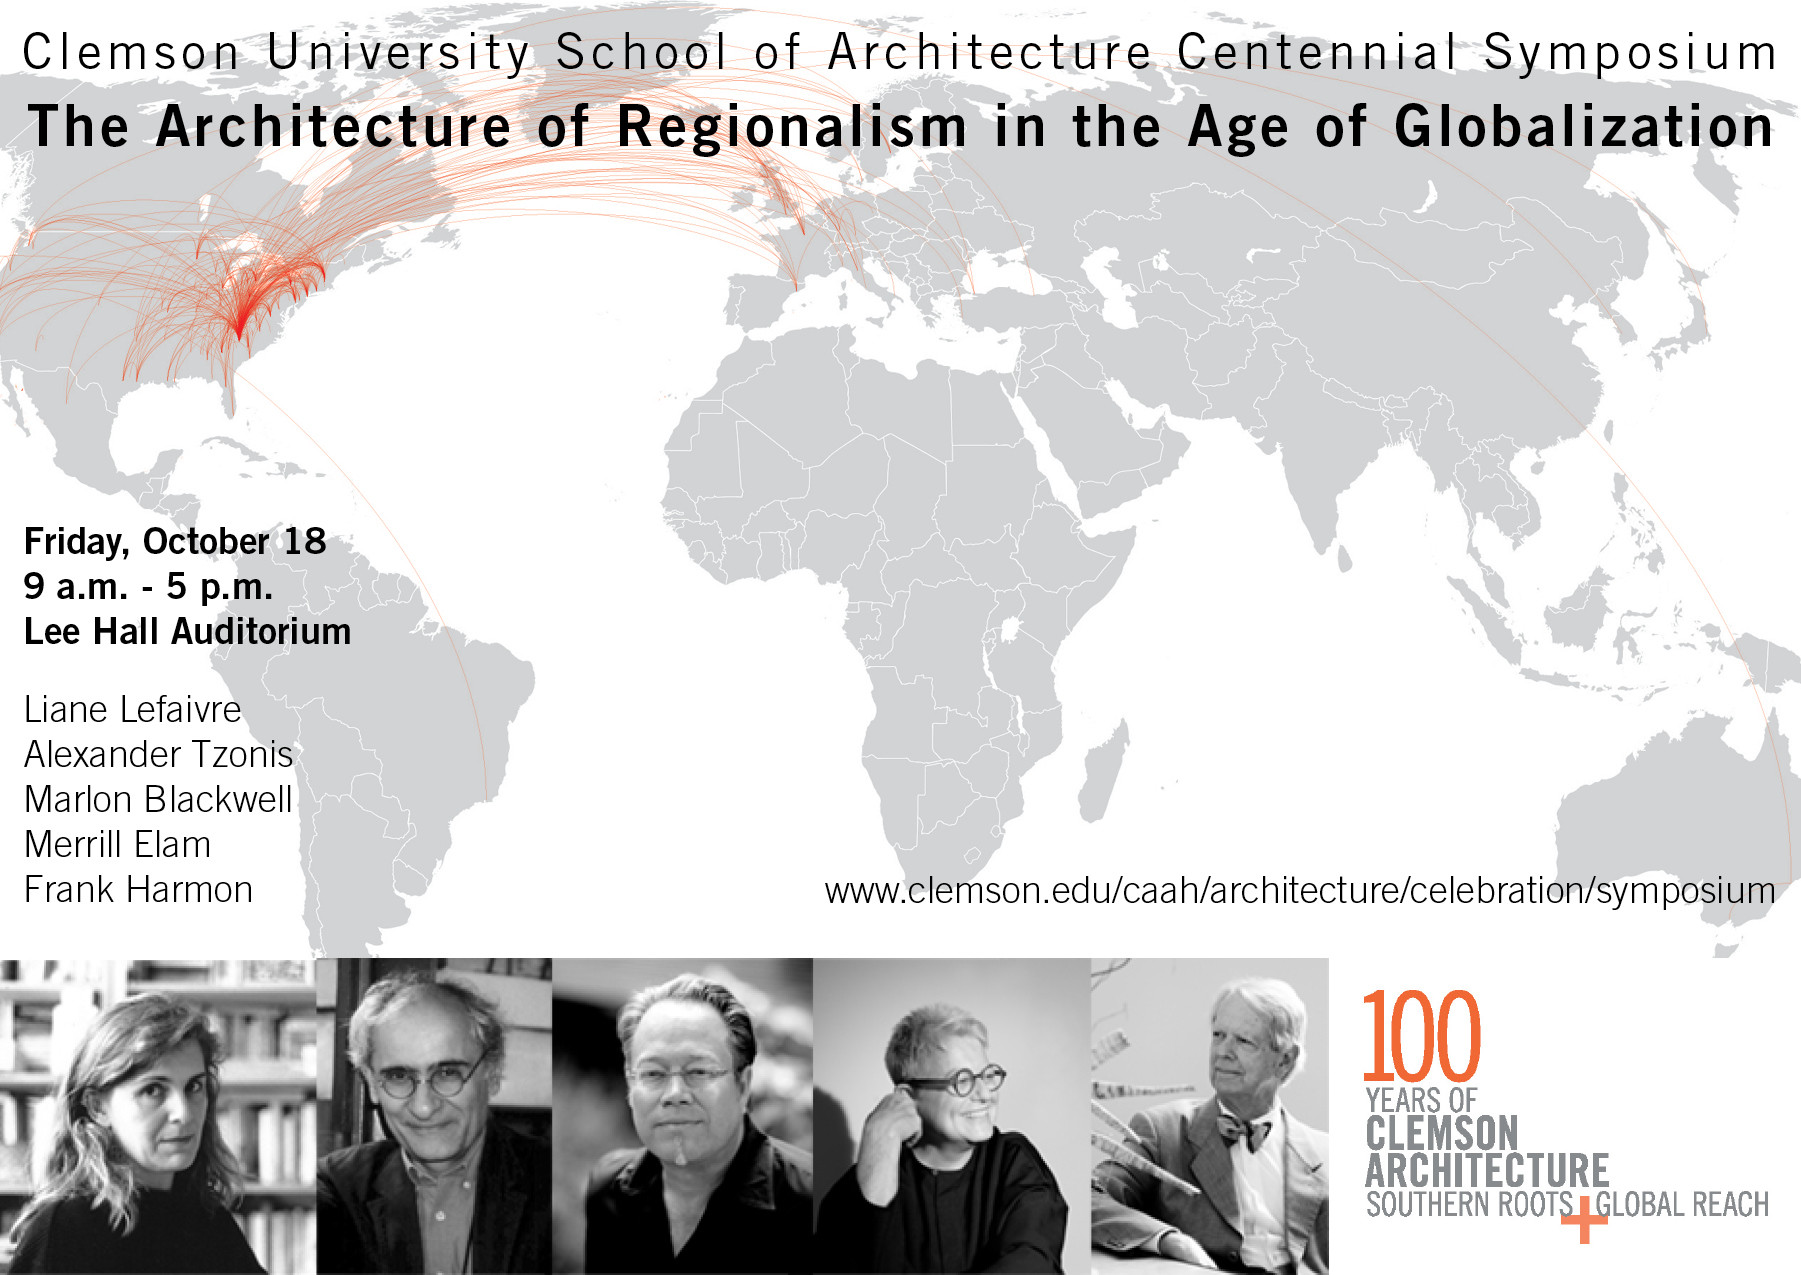 """The Architecture of Regionalism in the Age of Globalization"" Symposium"